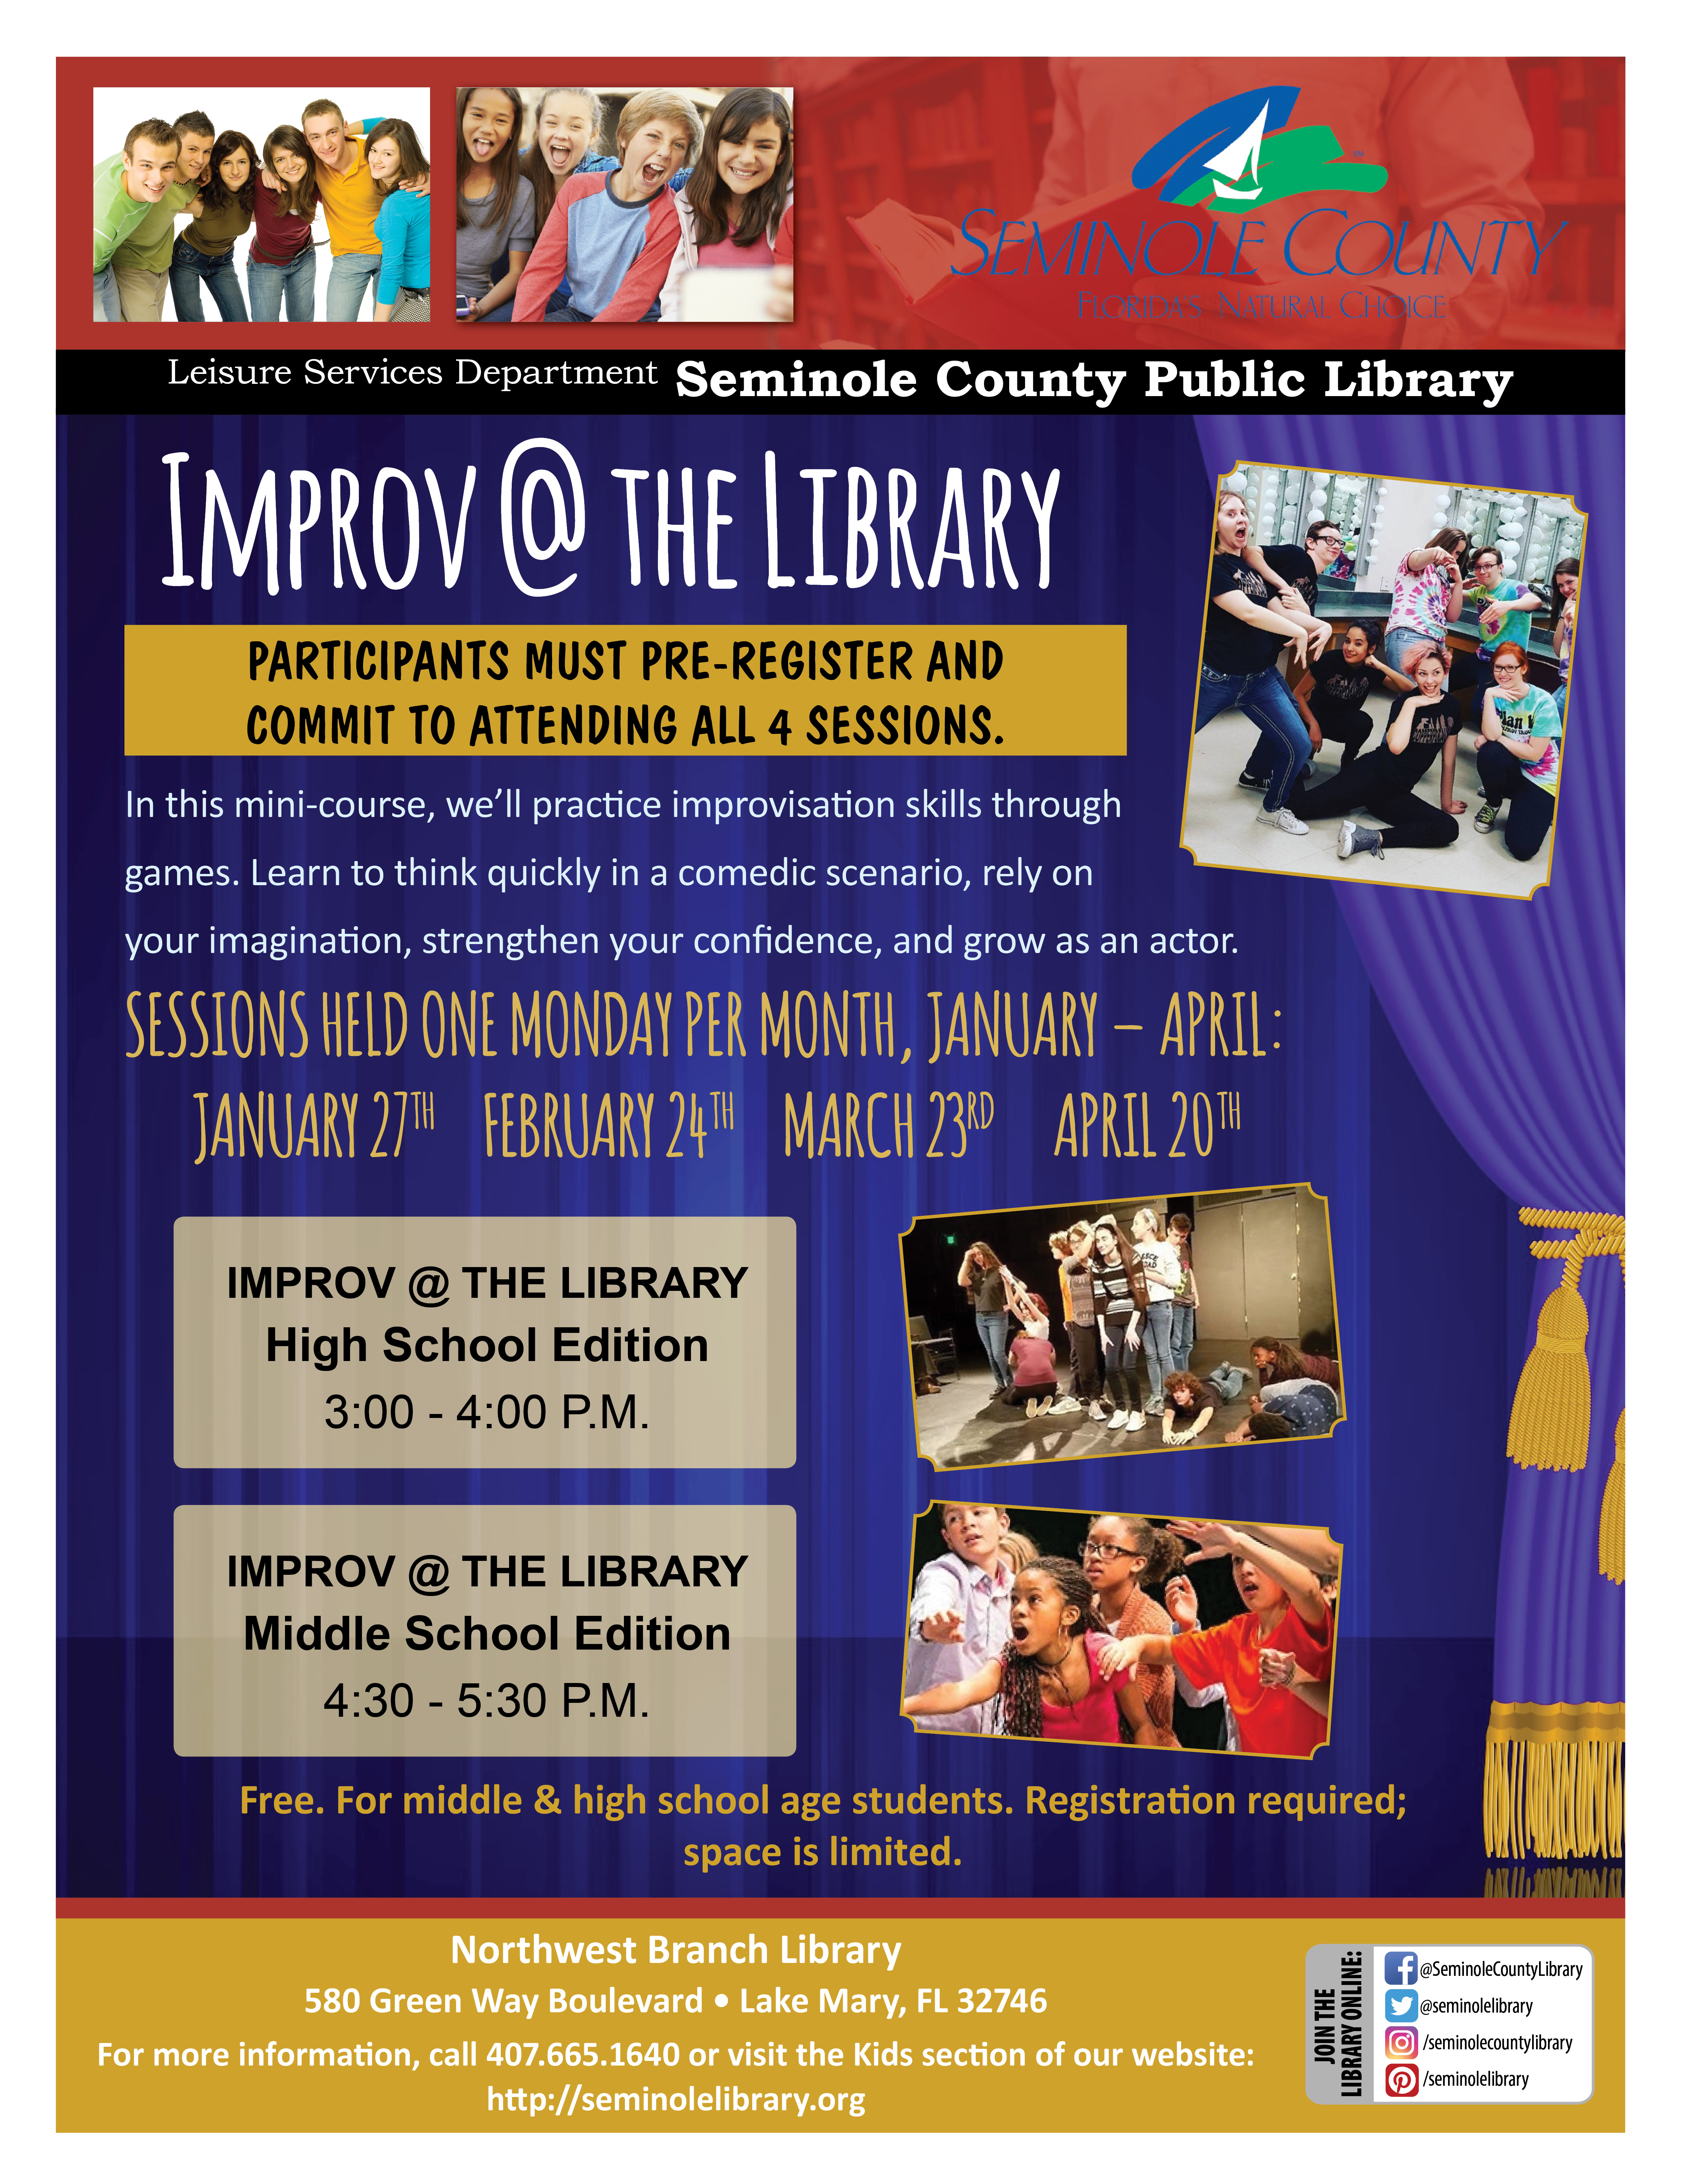 Improv @ the Library for Tweens and Teens